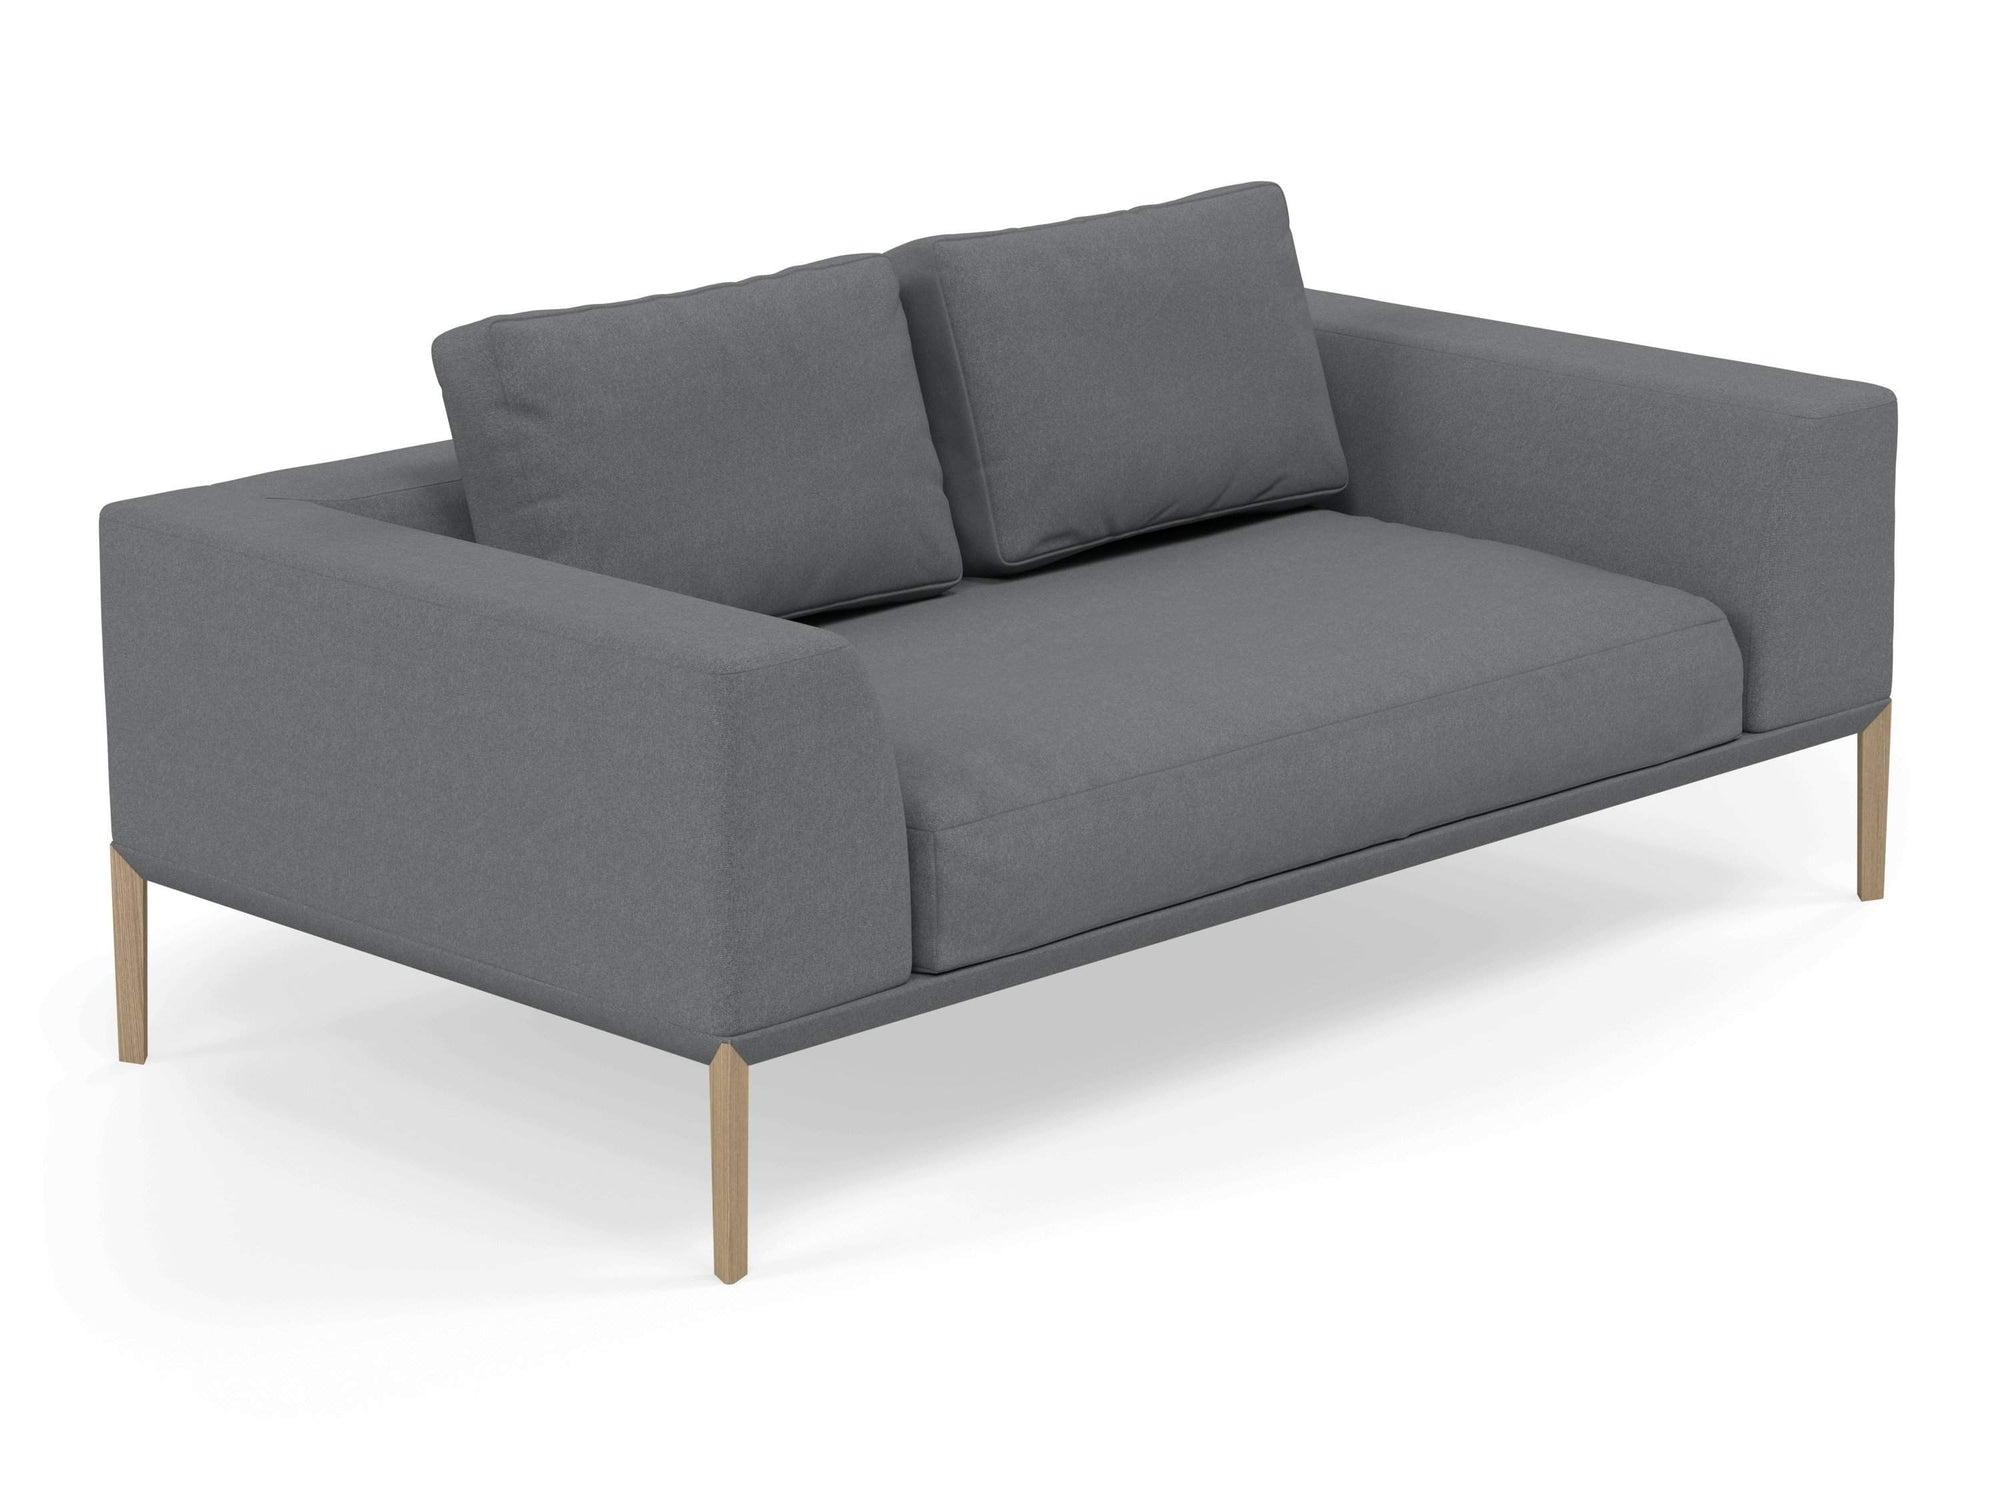 Modern 2 Seater Sofa with 2 Armrests in Sea Spray Blue Fabric-Natural Oak-Distinct Designs (London) Ltd